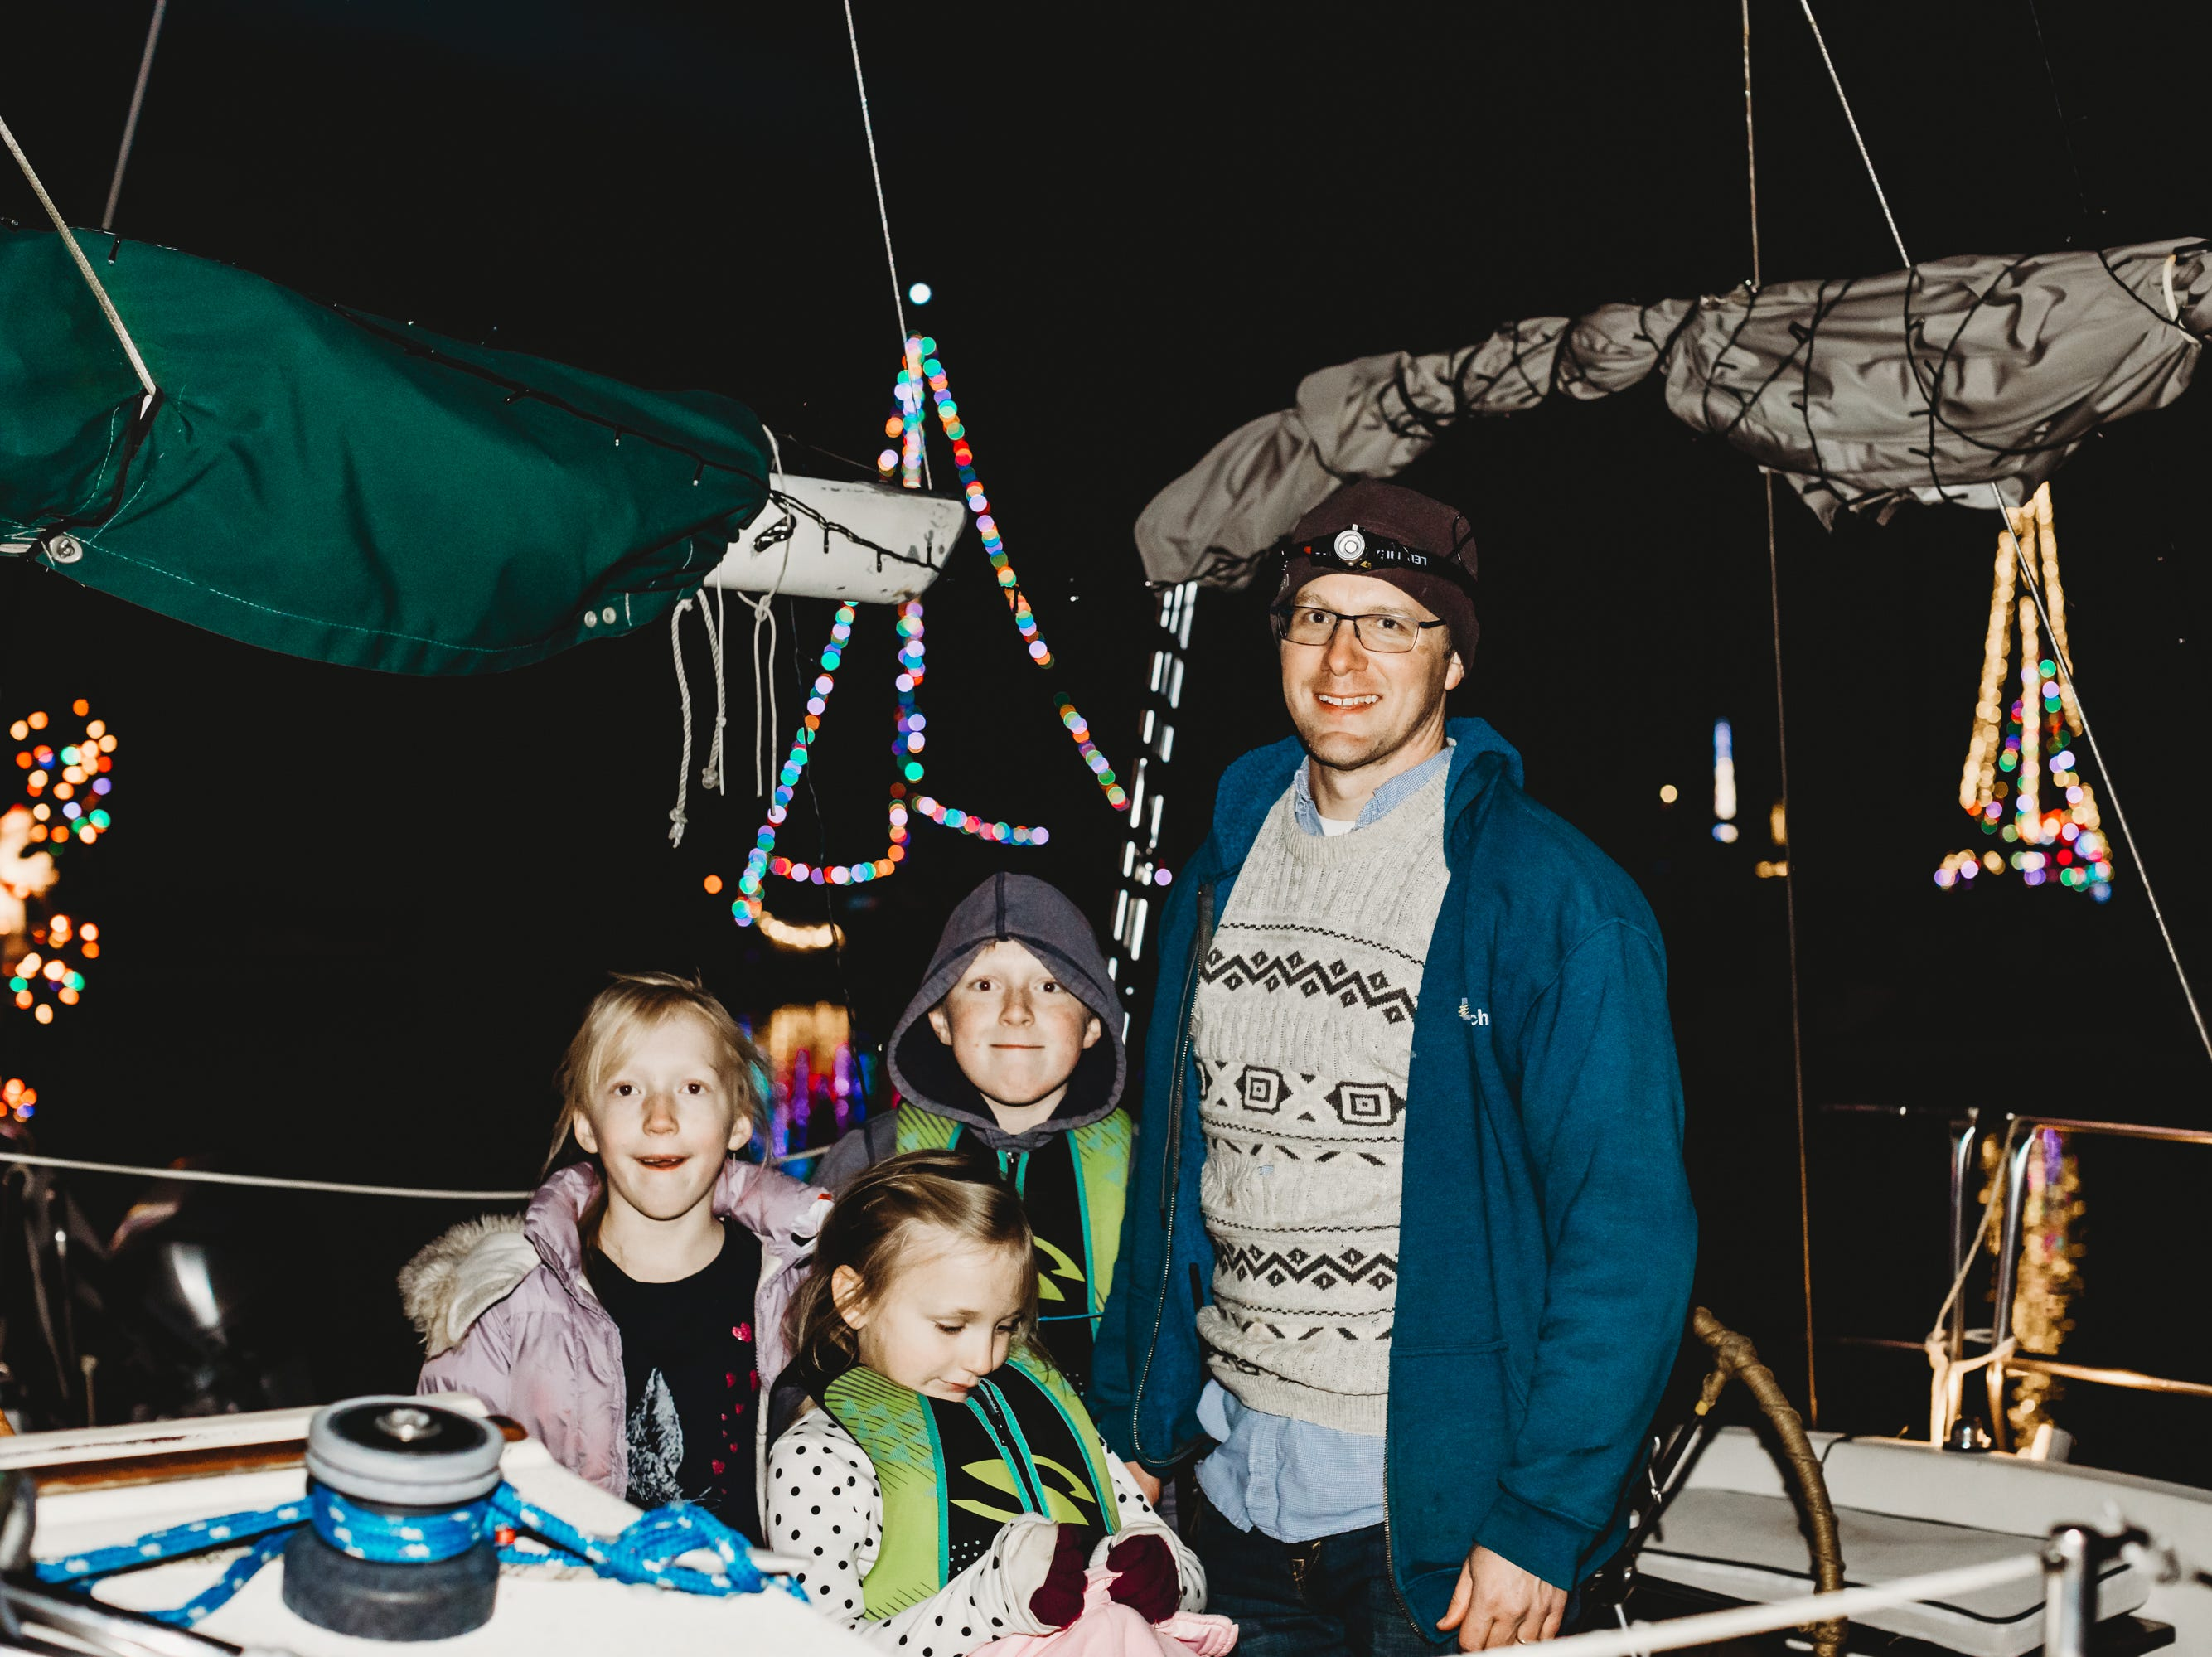 Felicity, Arianna, Daniel and David  cast off to enjoy the lights from the lake.  The Western Carolina Sailing Club held their Cruising Fleet Annual Parade of Lights on Lake Hartwell in Anderson Friday, December 7, 2018.